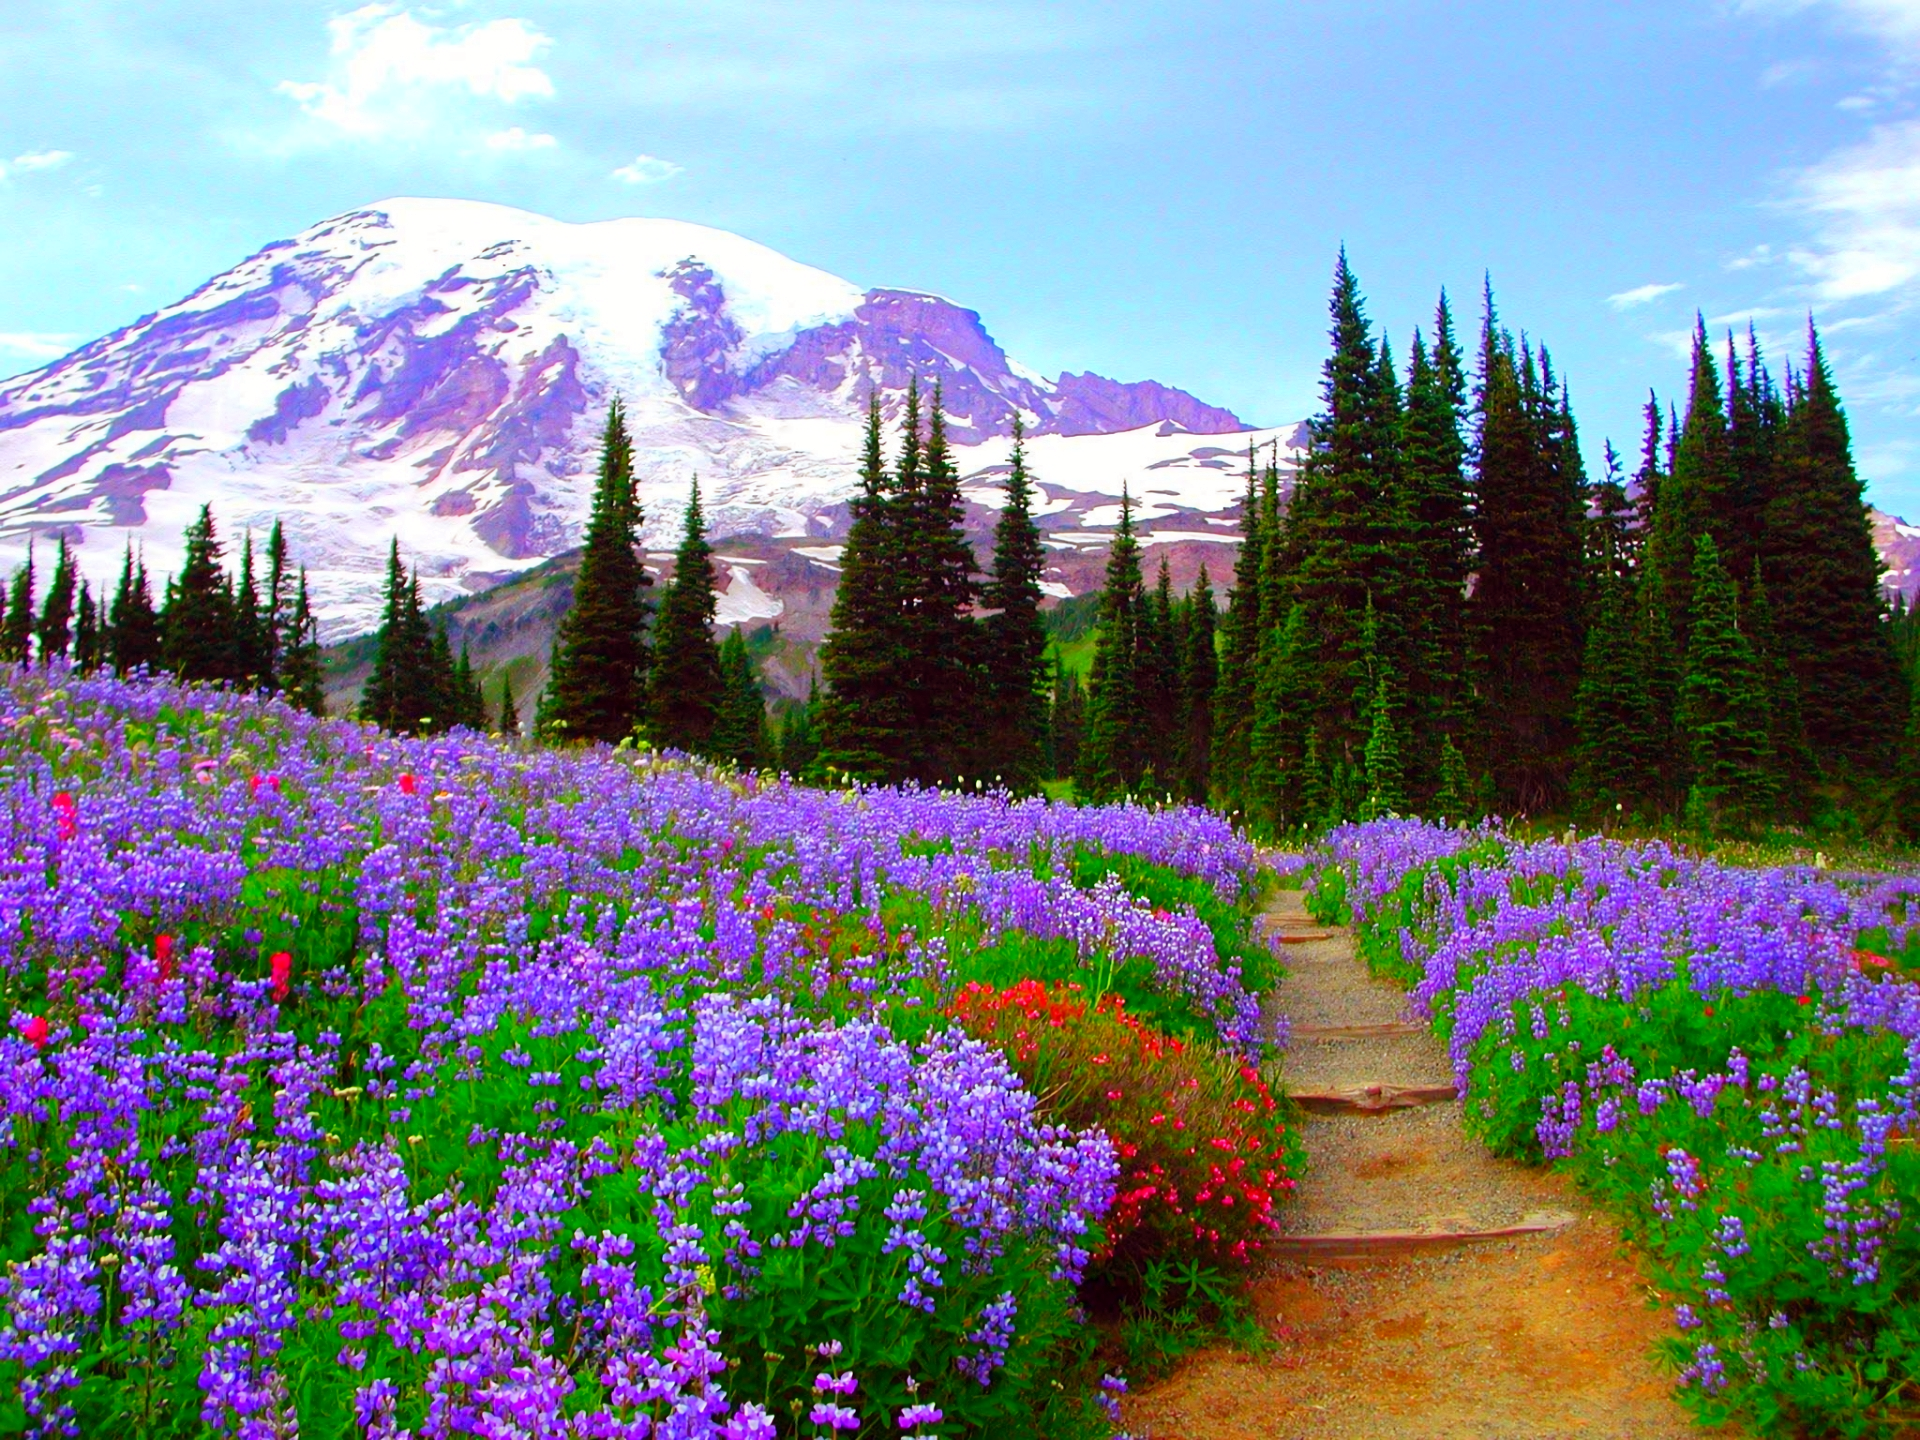 Flower Field in the Mountains HD Wallpaper | Background Image ...